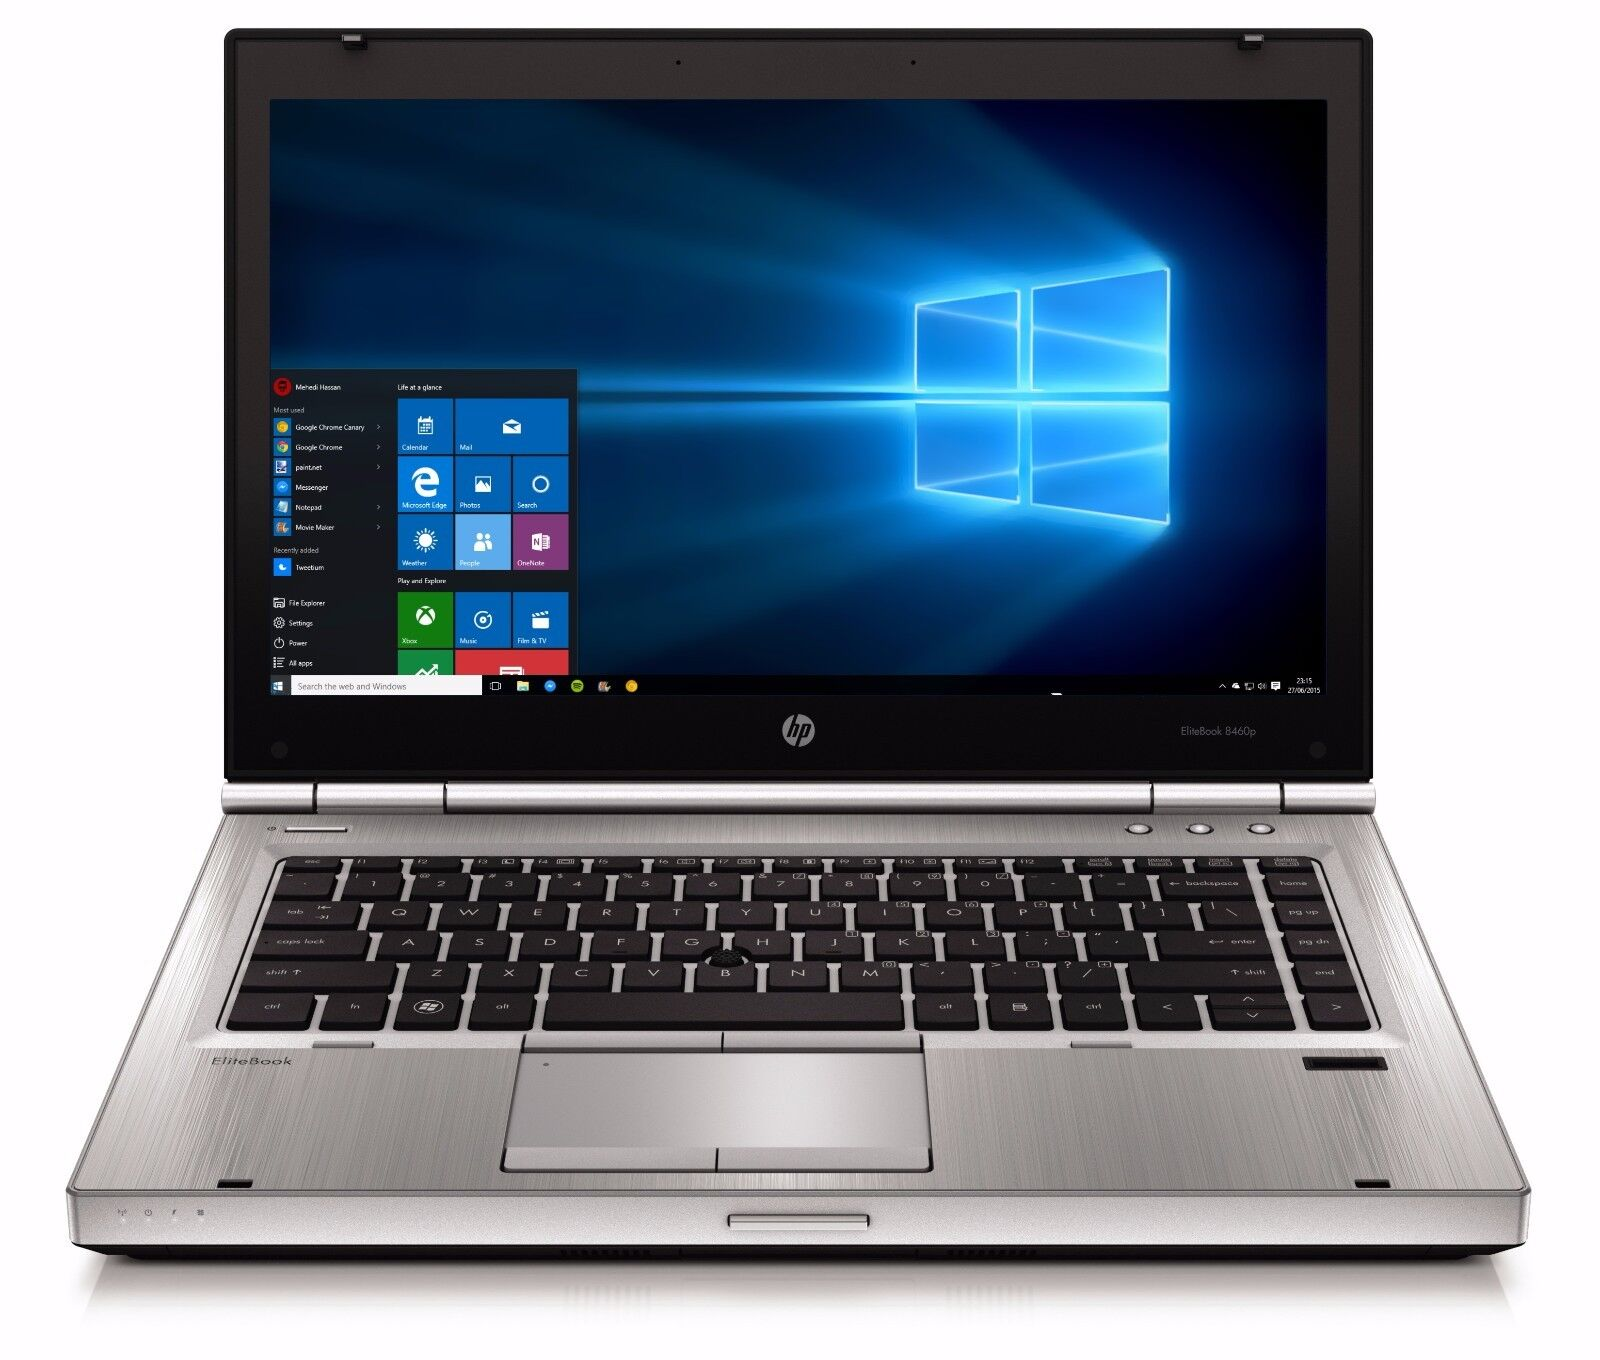 HP Elitebook Laptop Intel i5 2.5GHz 8GB 250GB Windows 10 DVD-RW Wifi HD Webcam